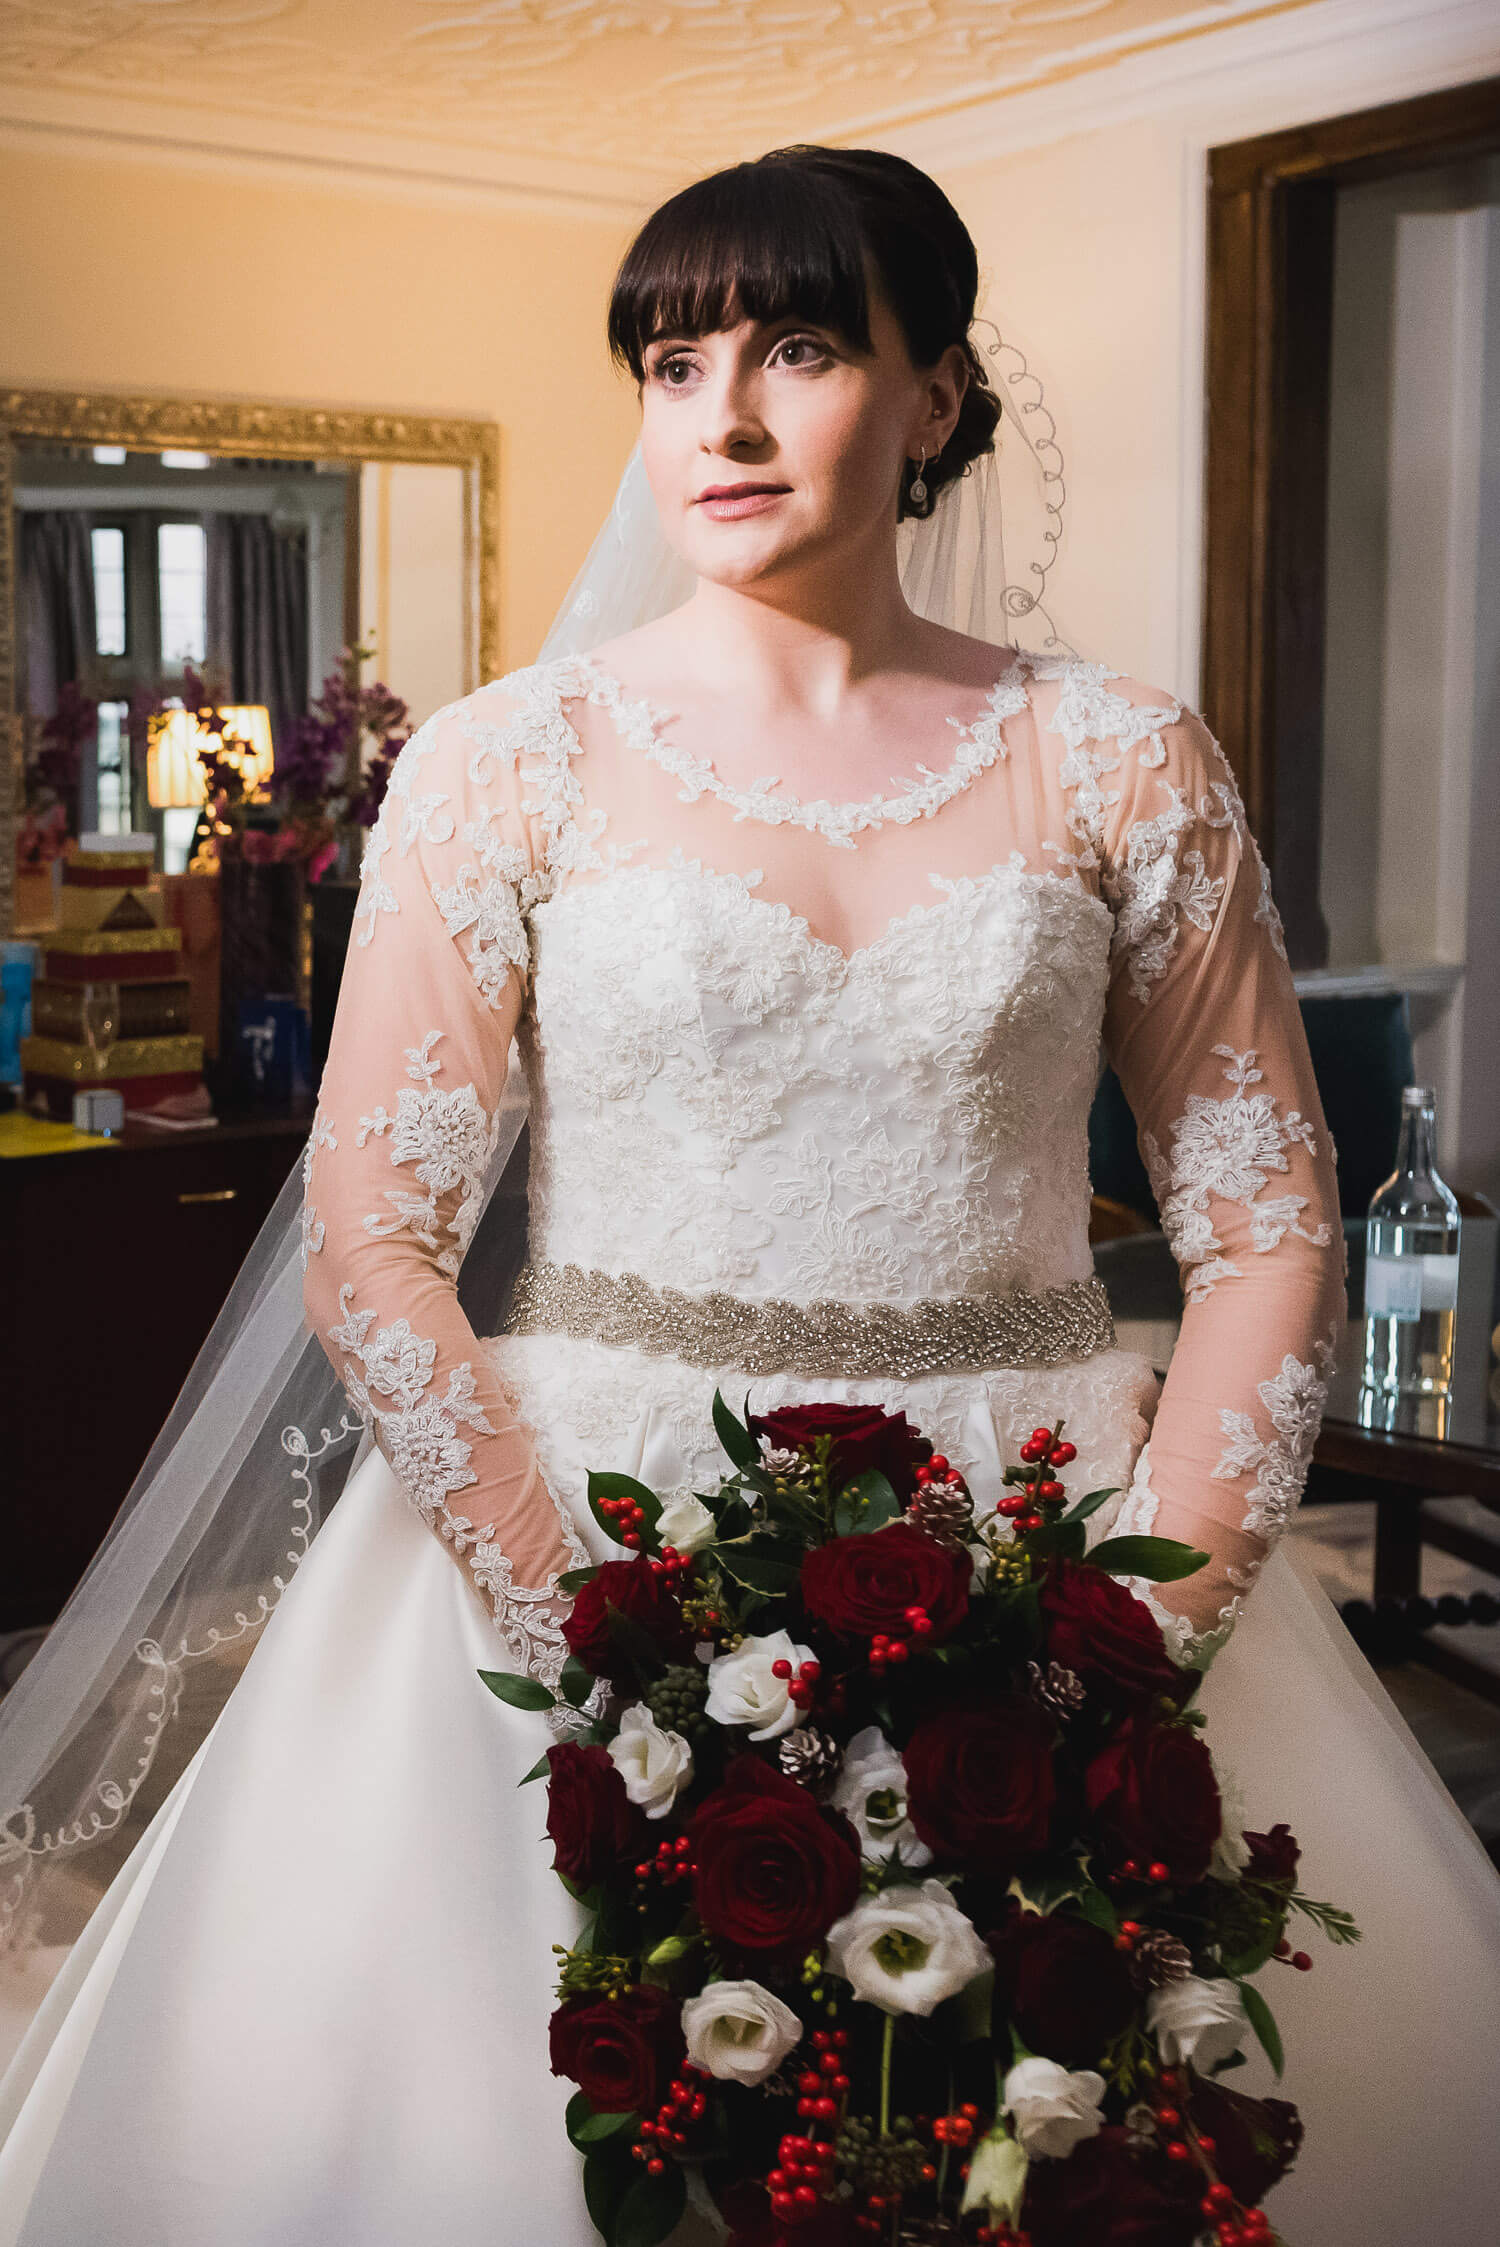 Fanhams Hall Wedding, bride portrait